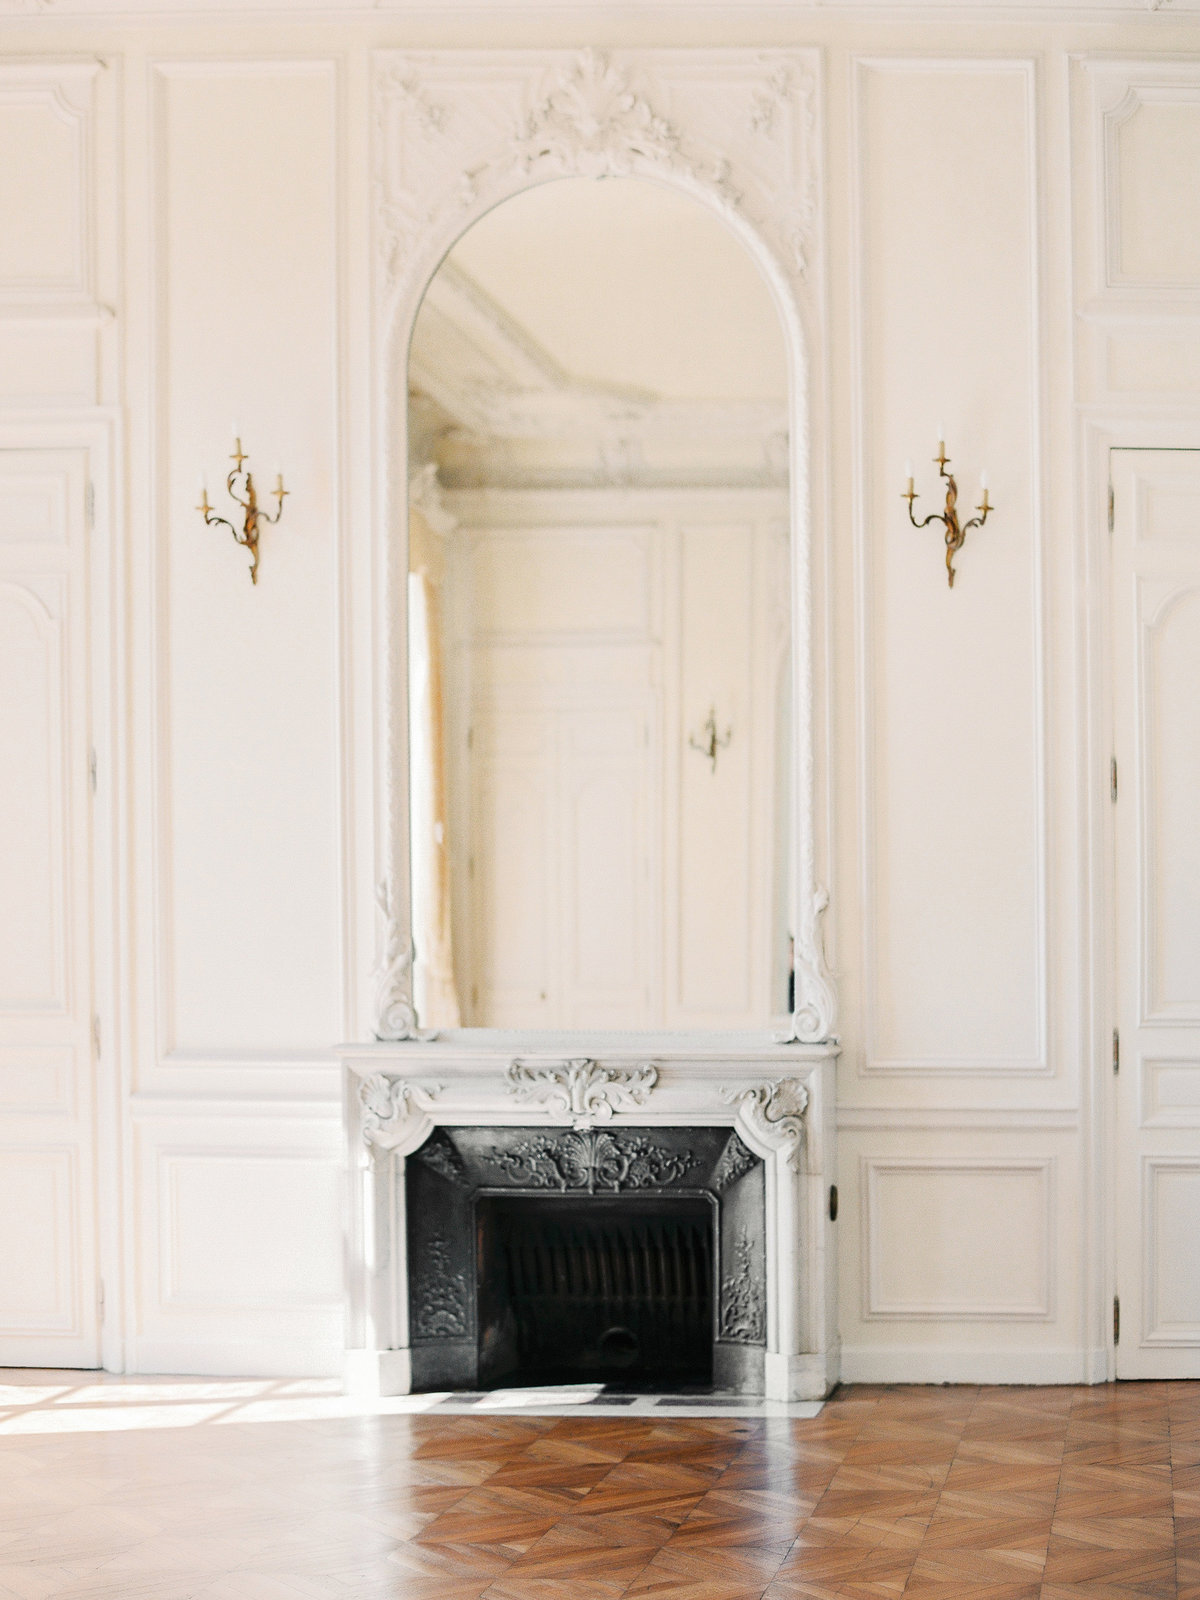 Luxurious french chateau wedding amelia soegijono0012